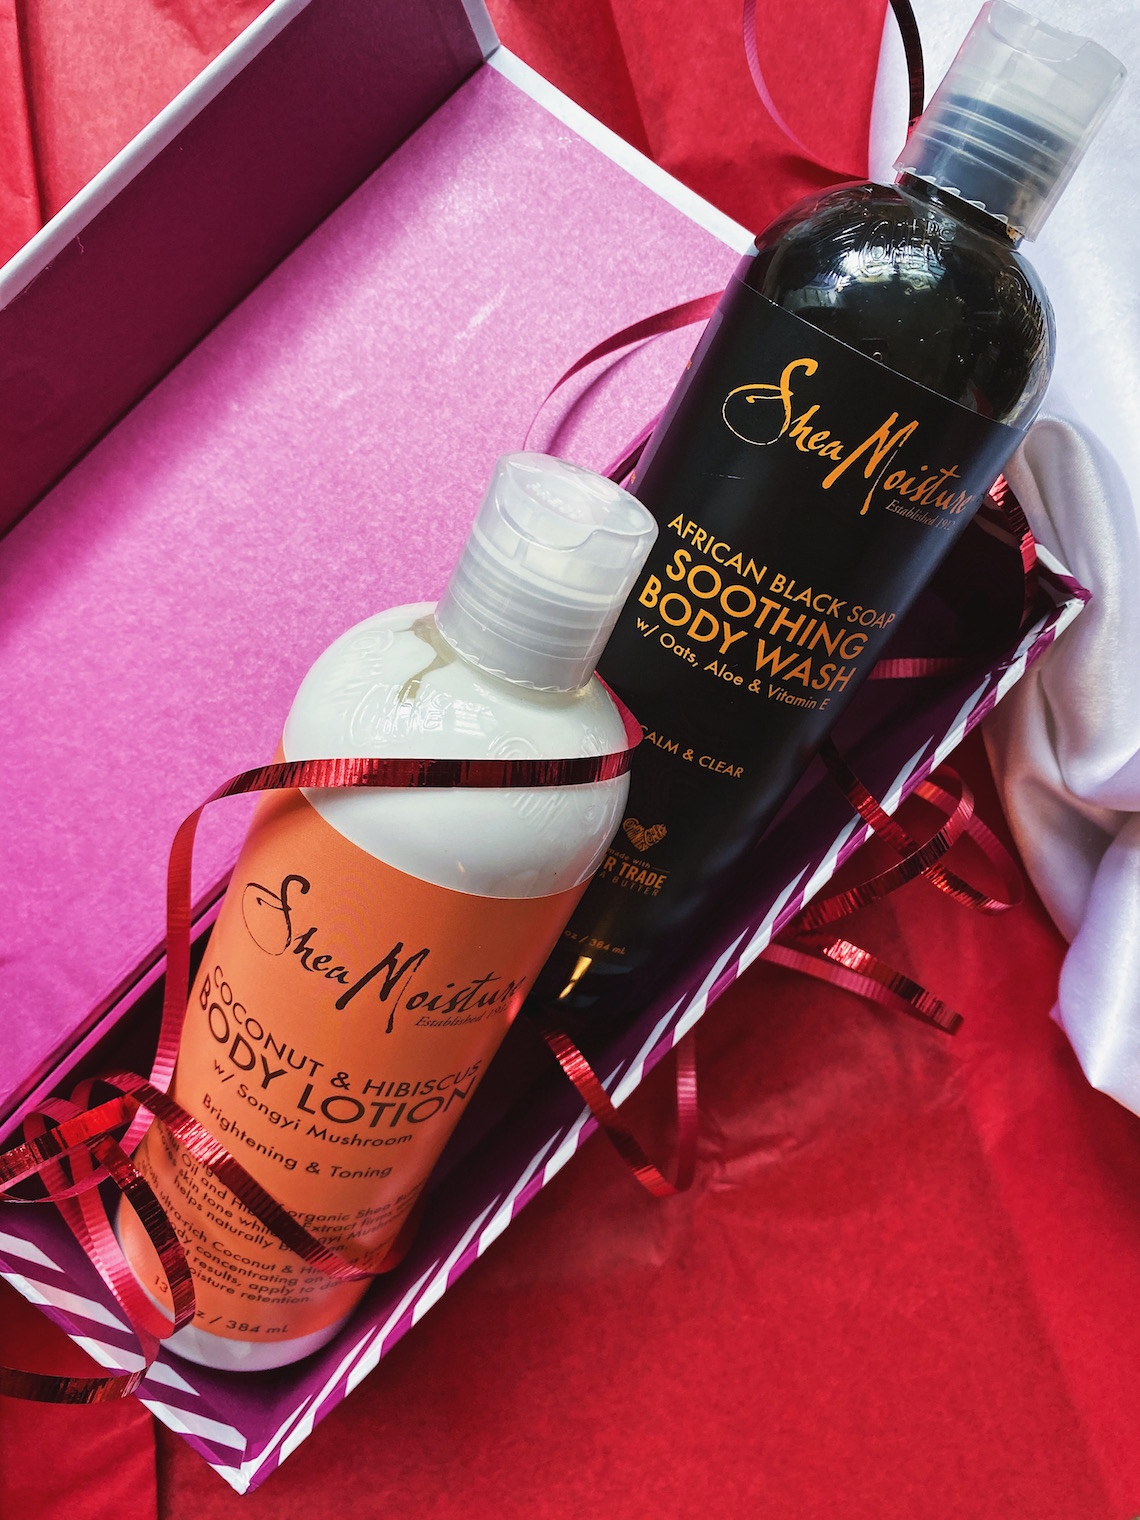 shea moisture coconut hibiscus body lotion-african black soap soothing body wash